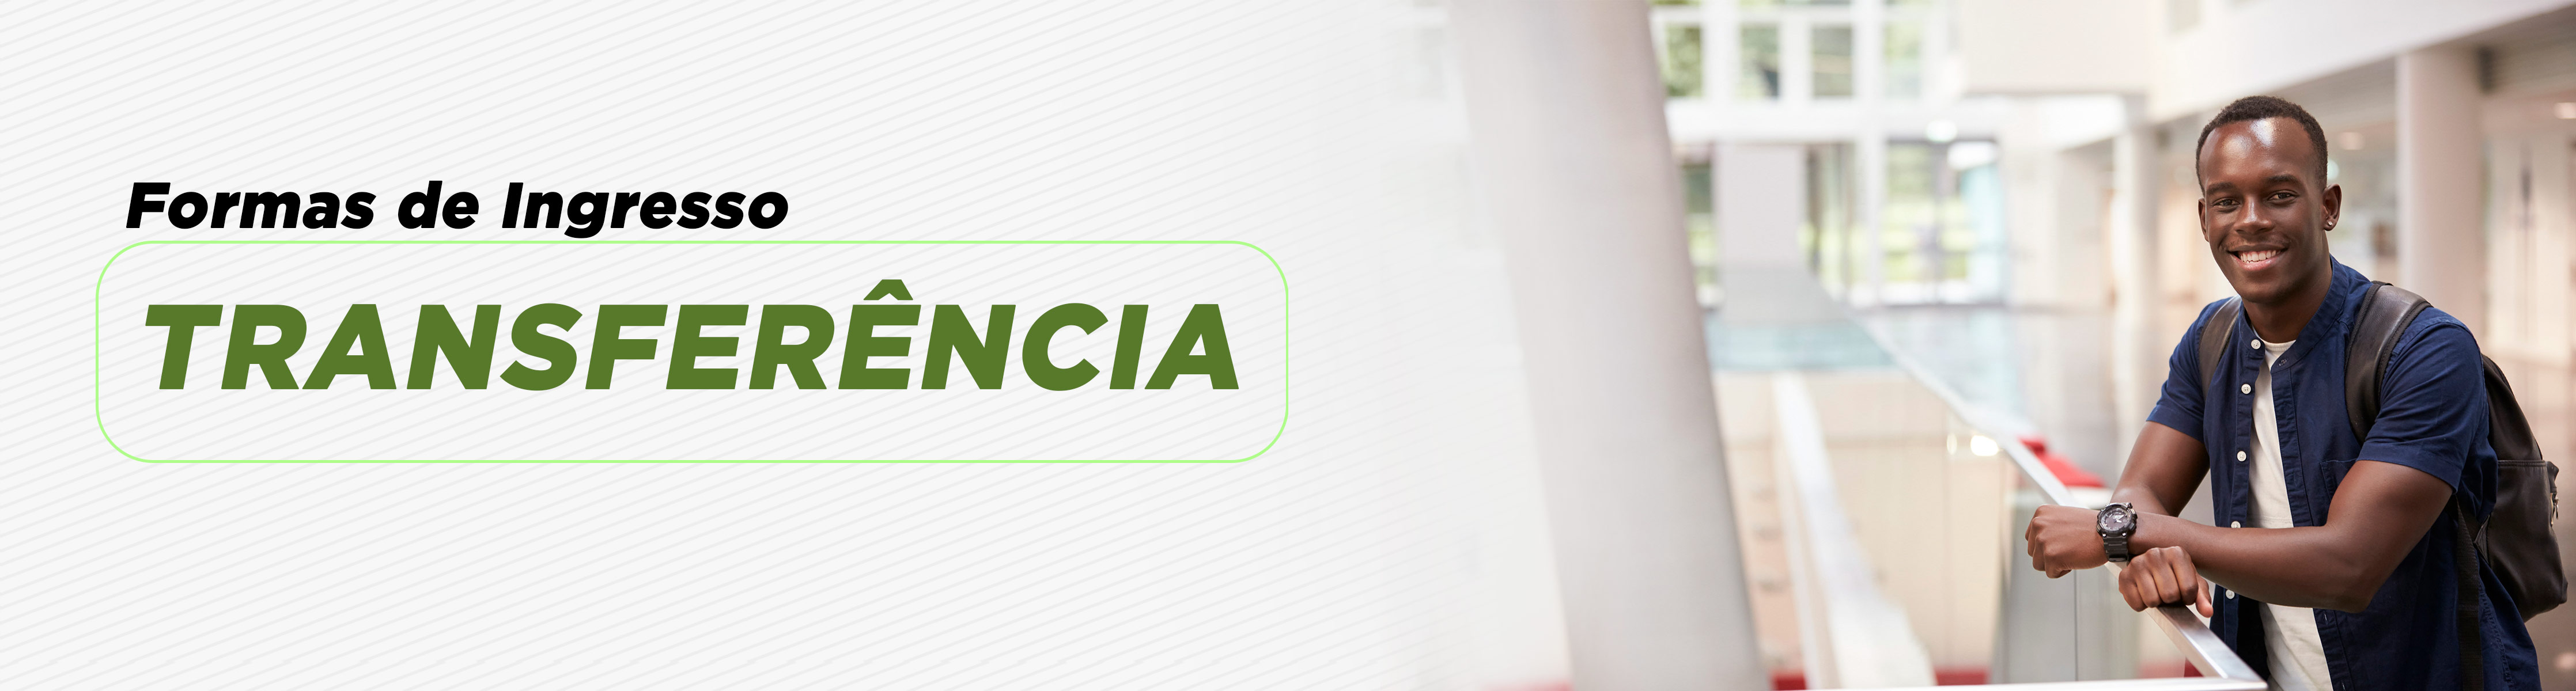 banner-transferencia-unifacear